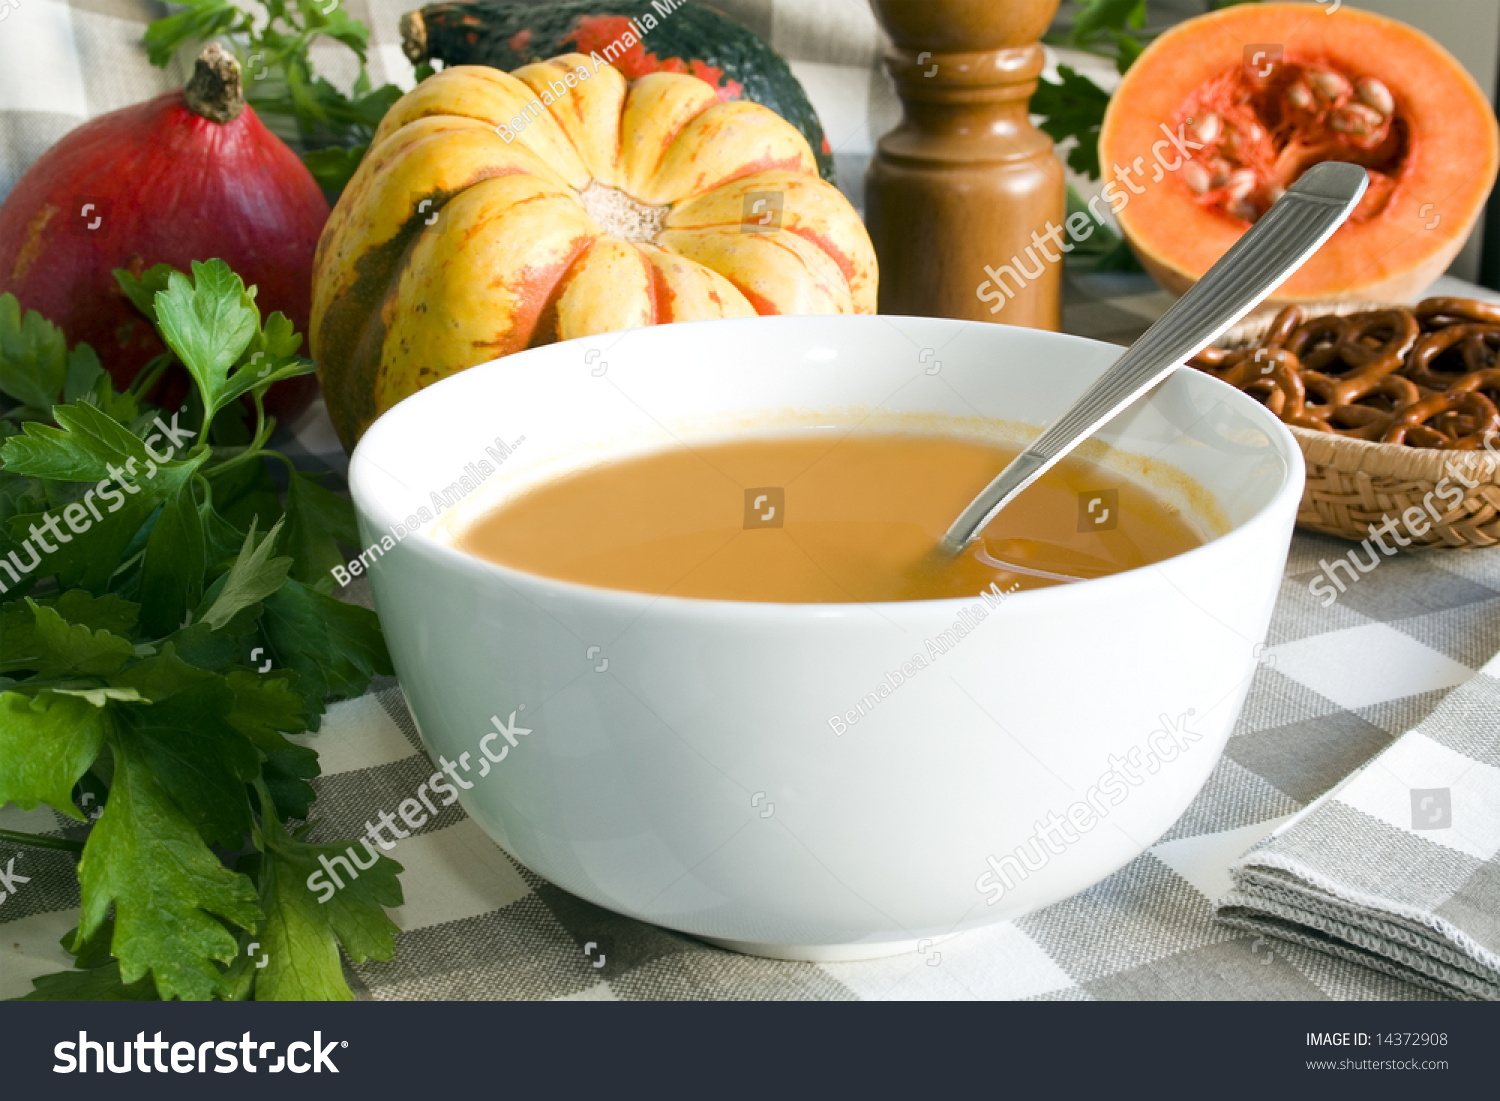 Pumpkin Soup And Different Pumpkin Types Focus On The